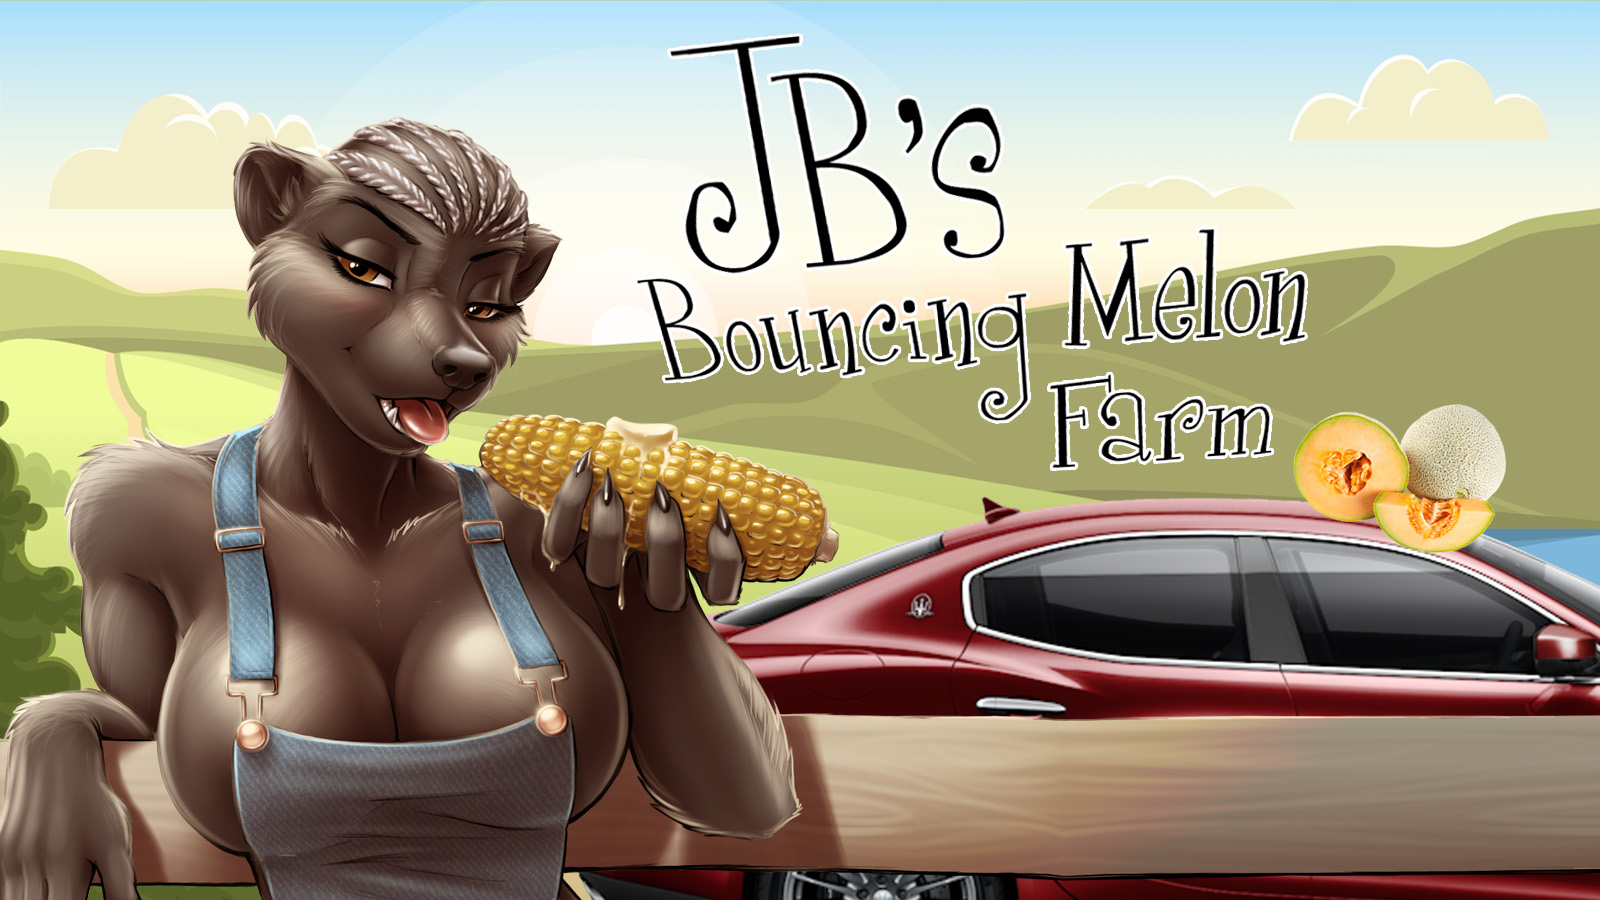 JB's Bouncy Melon Farm